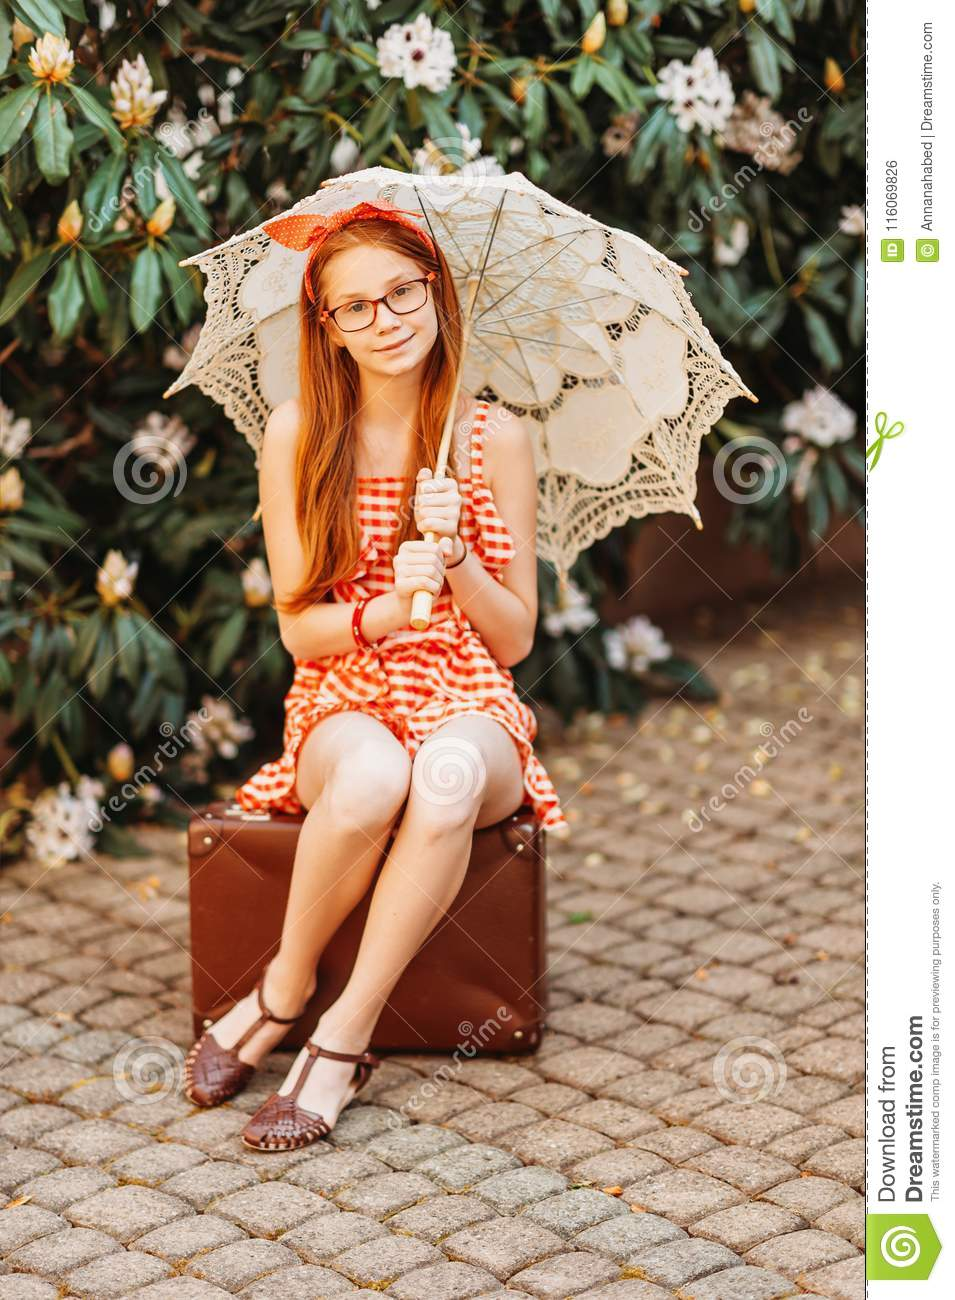 138 Outdoor Portrait Young Cute Girl Gymnast Photos - Free